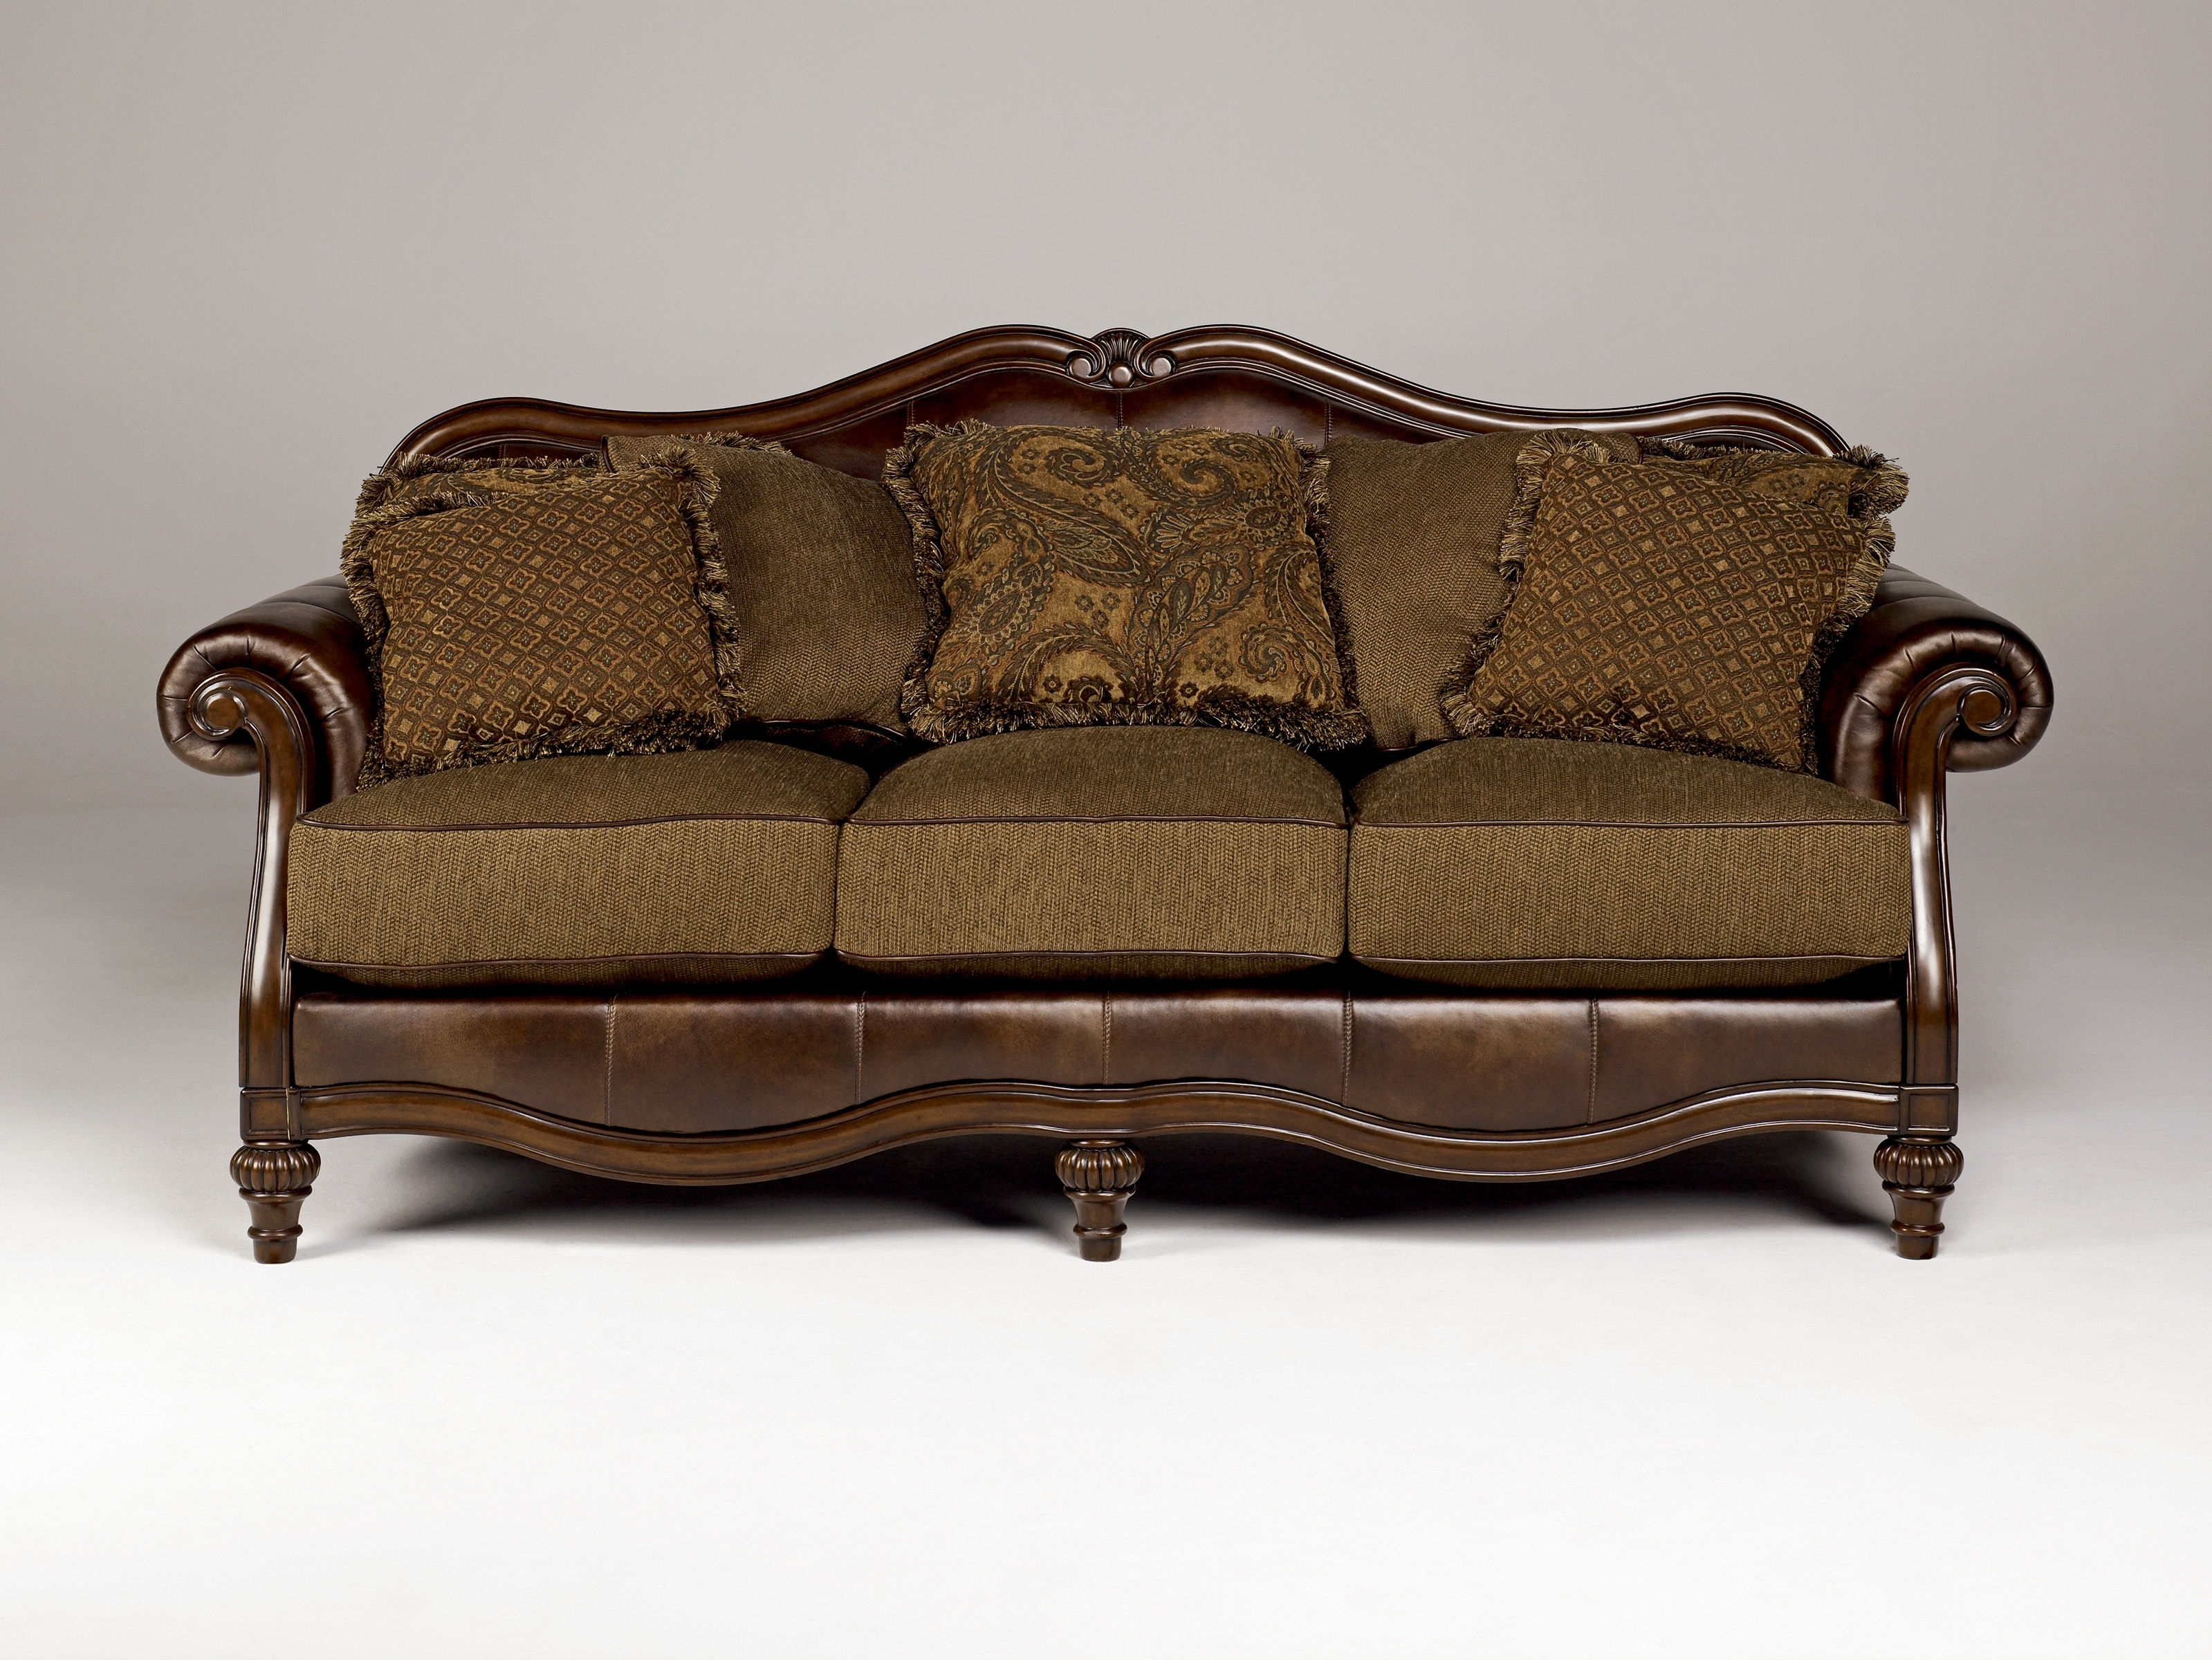 Ashley Furniture Claremore Antique Sofa | The Classy Home Within Antique Sofas (Image 4 of 10)